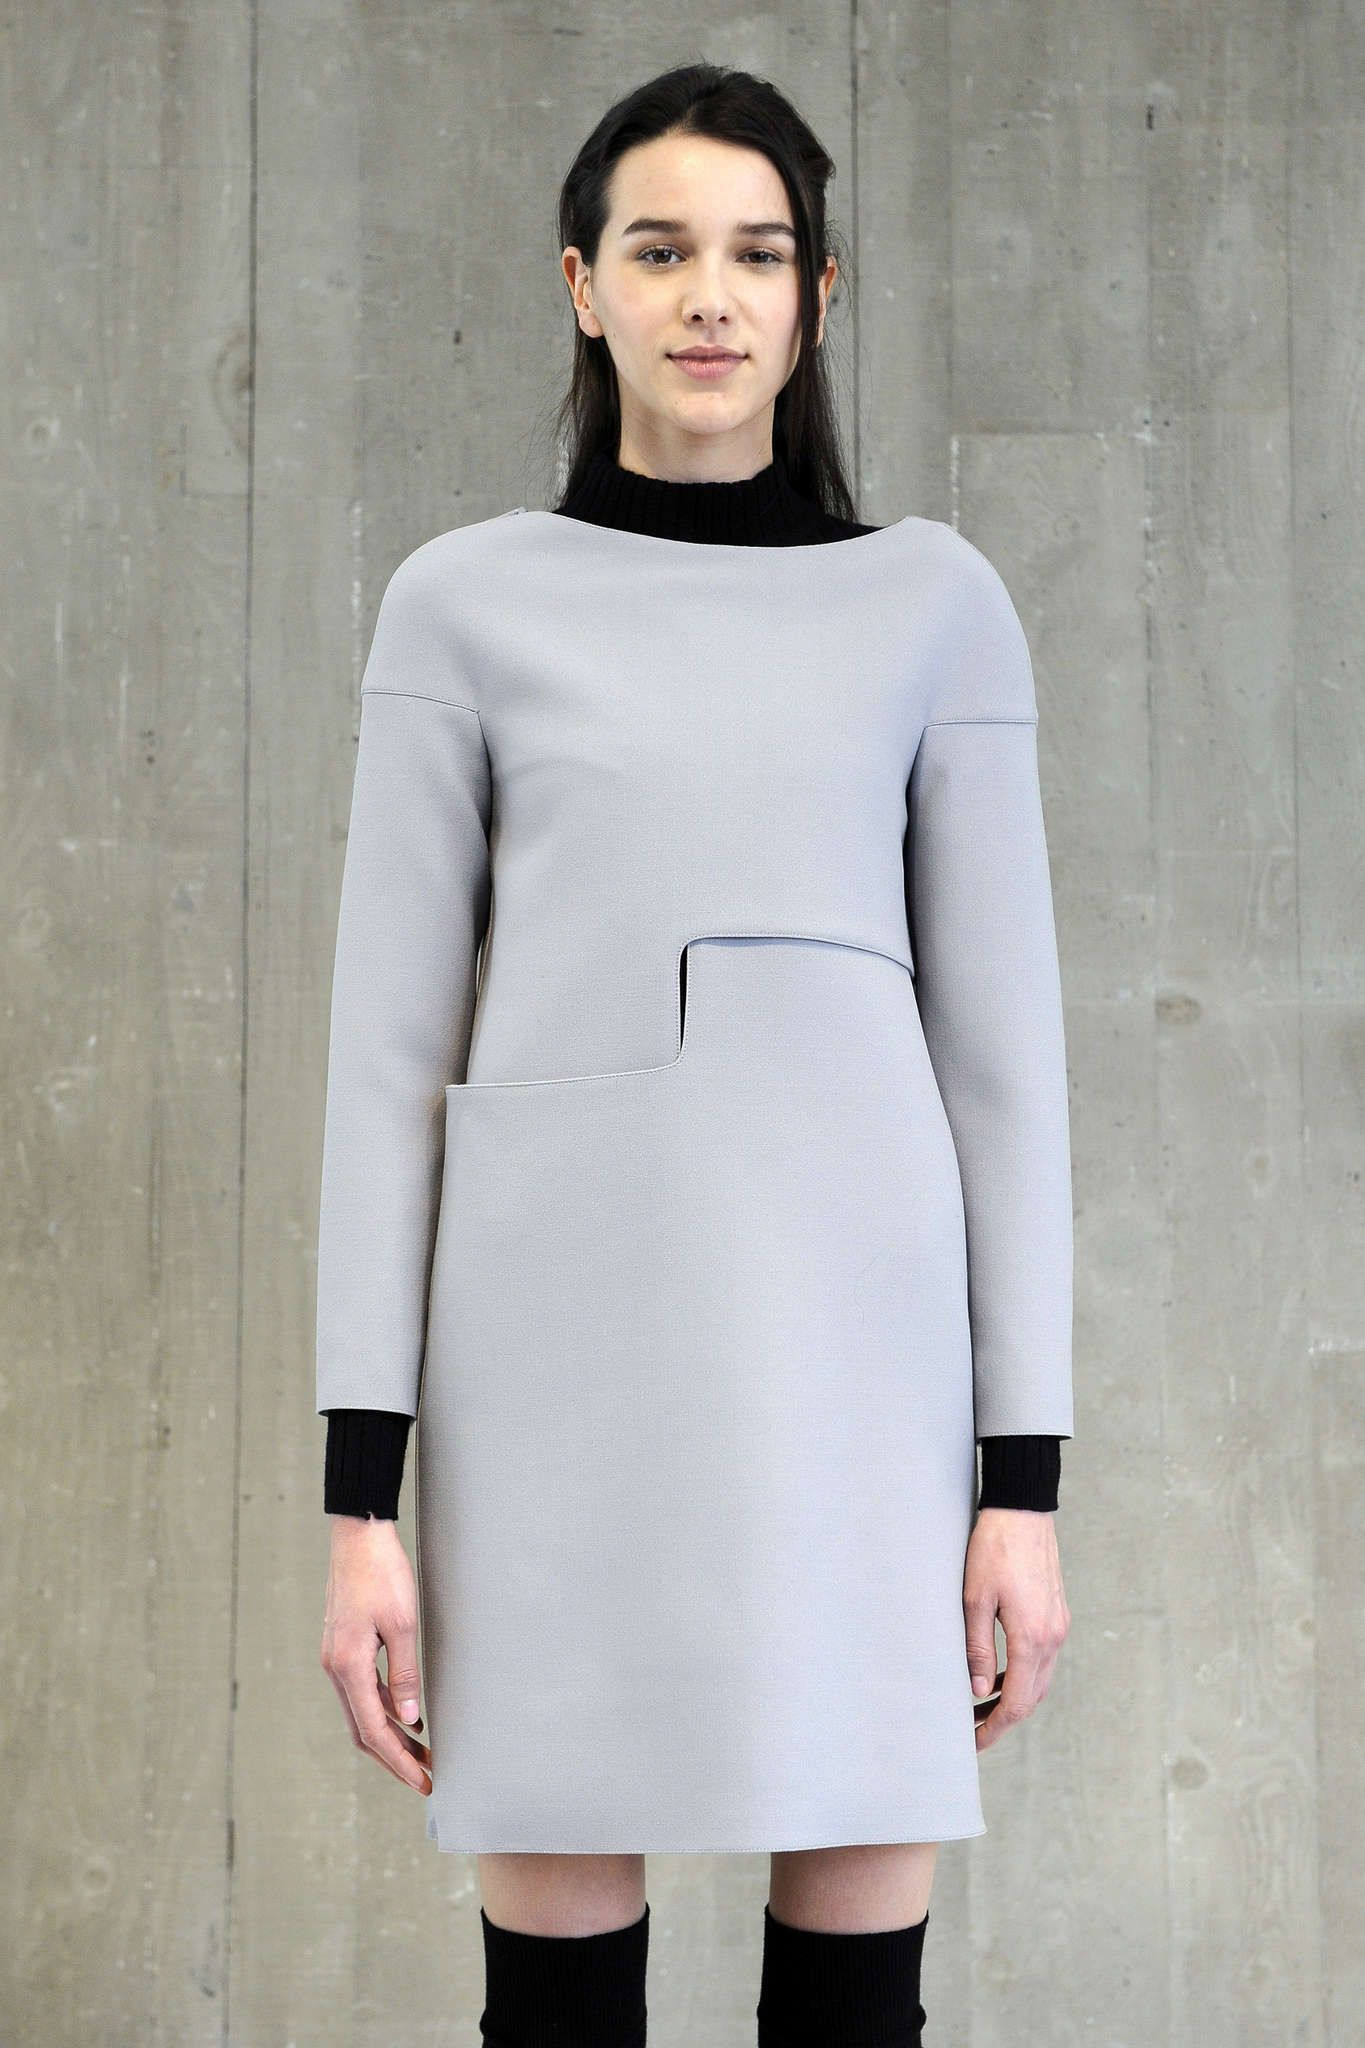 Innovative Pattern Cutting - structured dress with geometric cut; contemporary fashion // Courreges A/W 2015